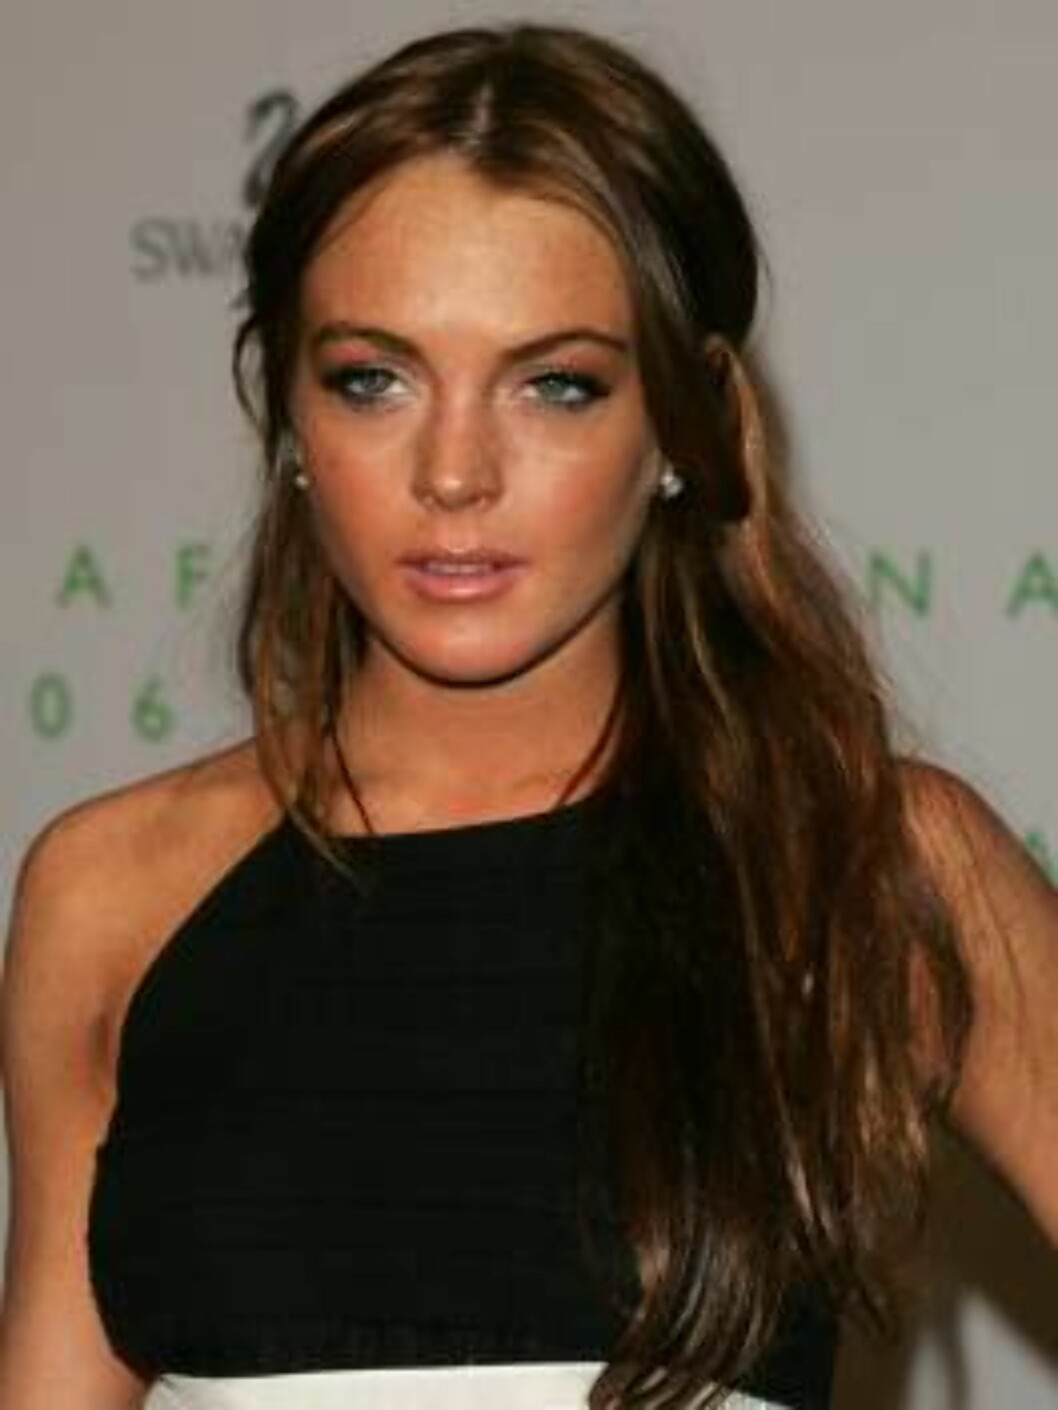 NEW YORK - JUNE 5:  Actress Lindsay Lohan attends the 2006 CFDA Awards at the New York Public Library on June 5, 2006 in New York City.  (Photo by Peter Kramer/Getty Images) *** Local Caption *** Lindsay Lohan  * SPECIAL INSTRUCTIONS:  * *OBJECT NAME: 711 Foto: All Over Press